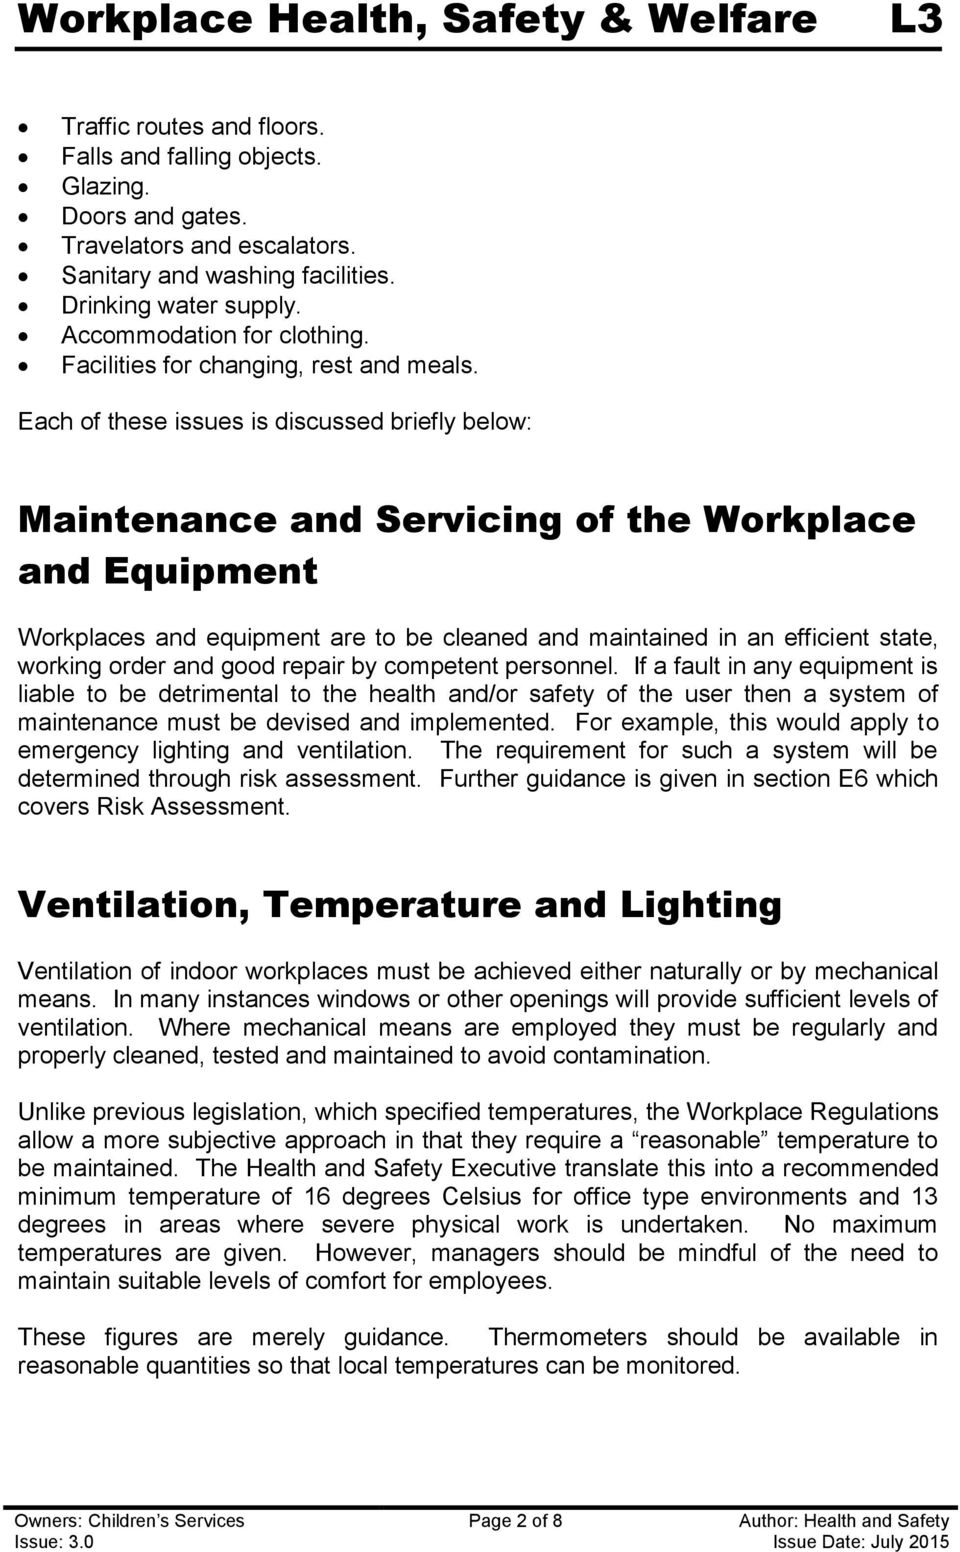 Each of these issues is discussed briefly below: Maintenance and Servicing of the Workplace and Equipment Workplaces and equipment are to be cleaned and maintained in an efficient state, working